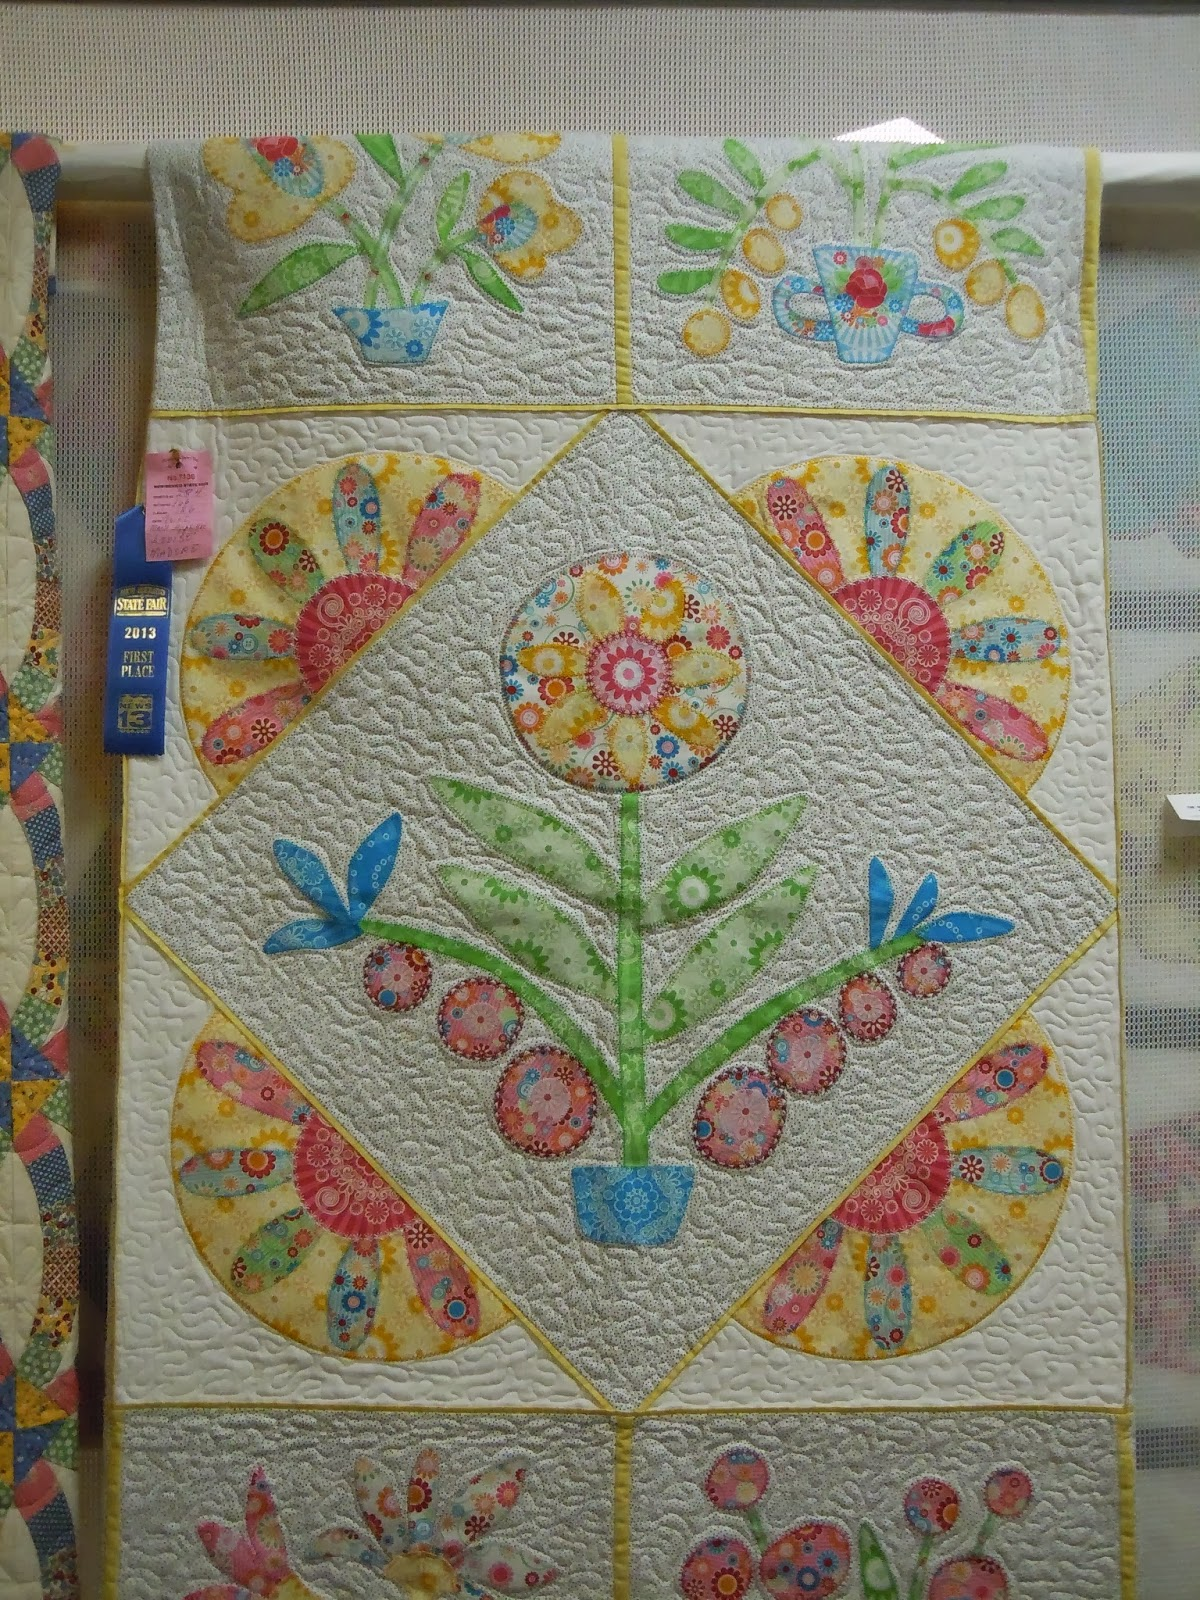 Quilting mod quilt show gallery for Mexican arts and crafts for sale